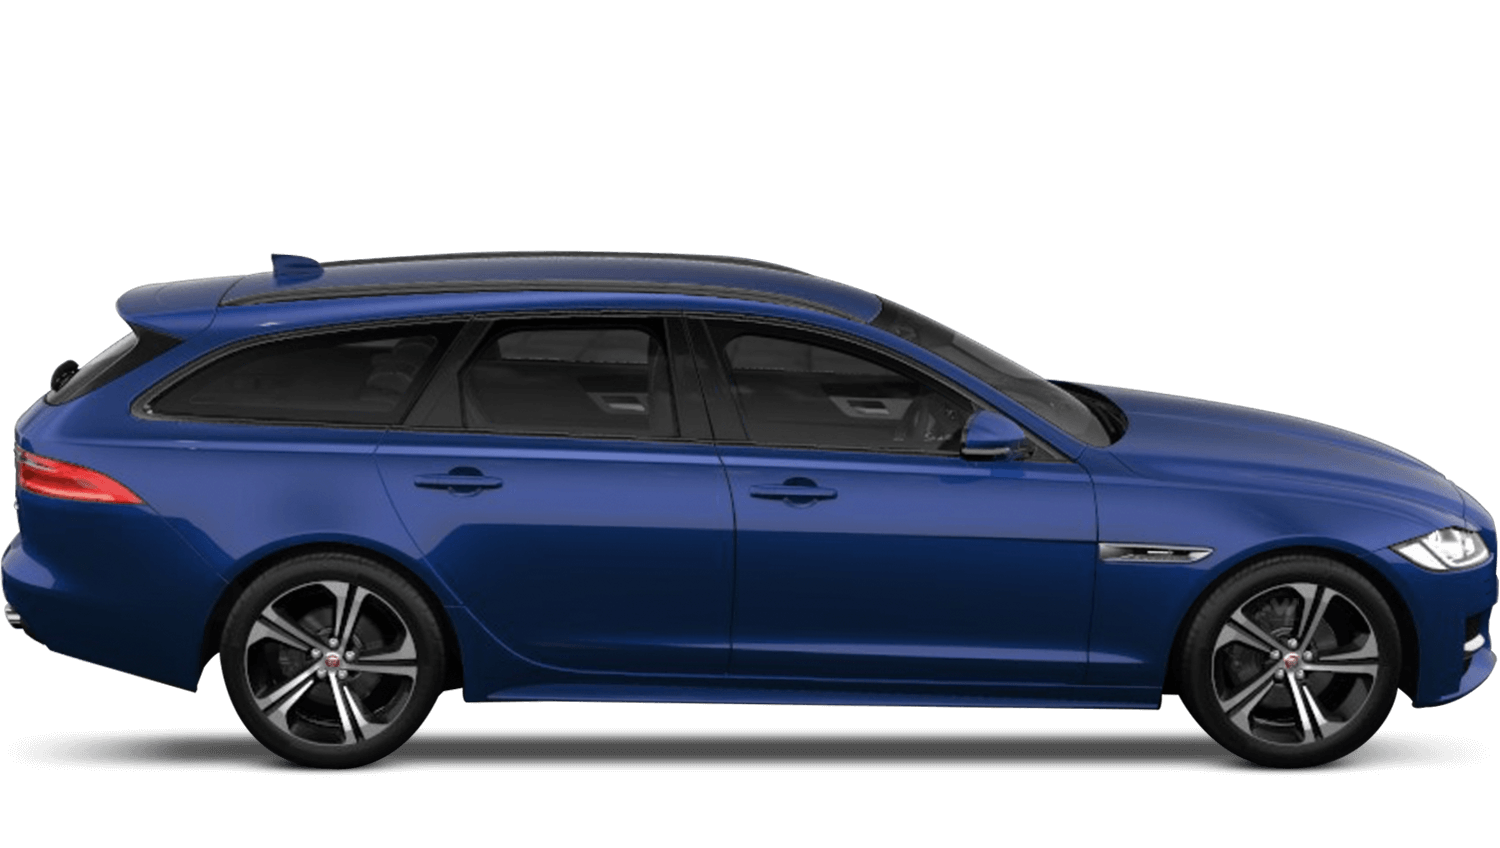 New Jaguar XF Cars for Sale